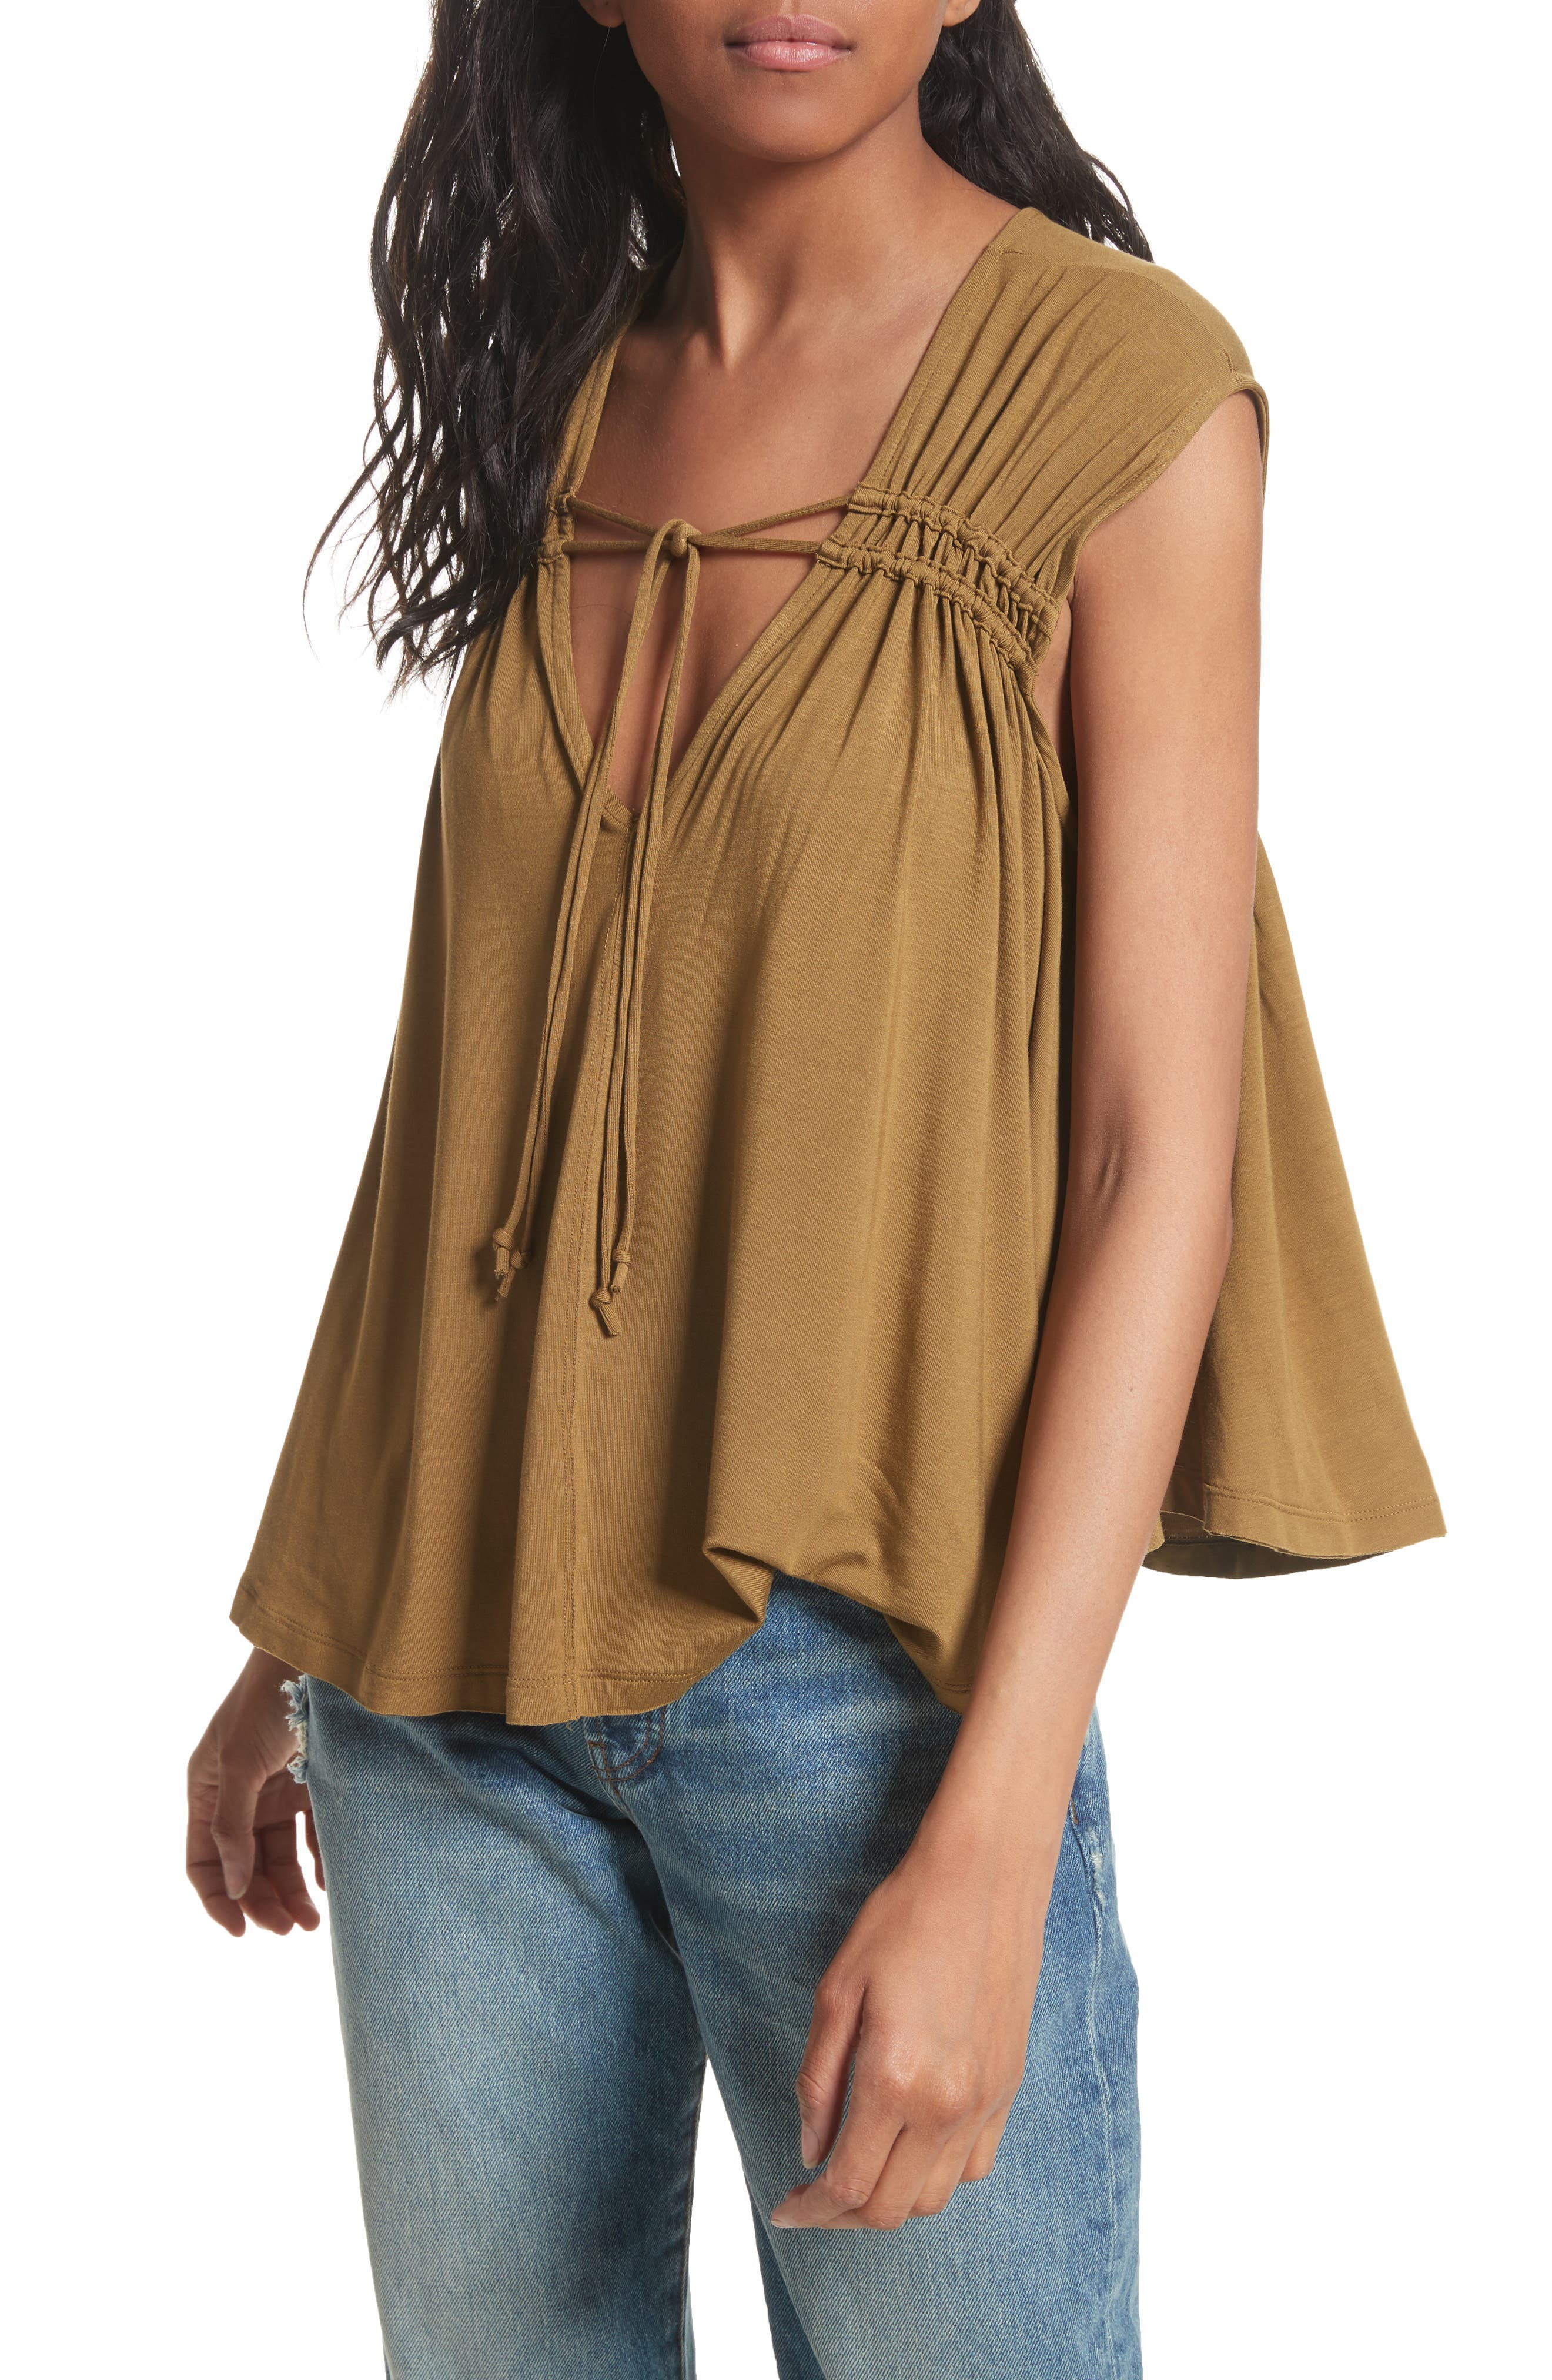 FREE PEOPLE Back in Town Top